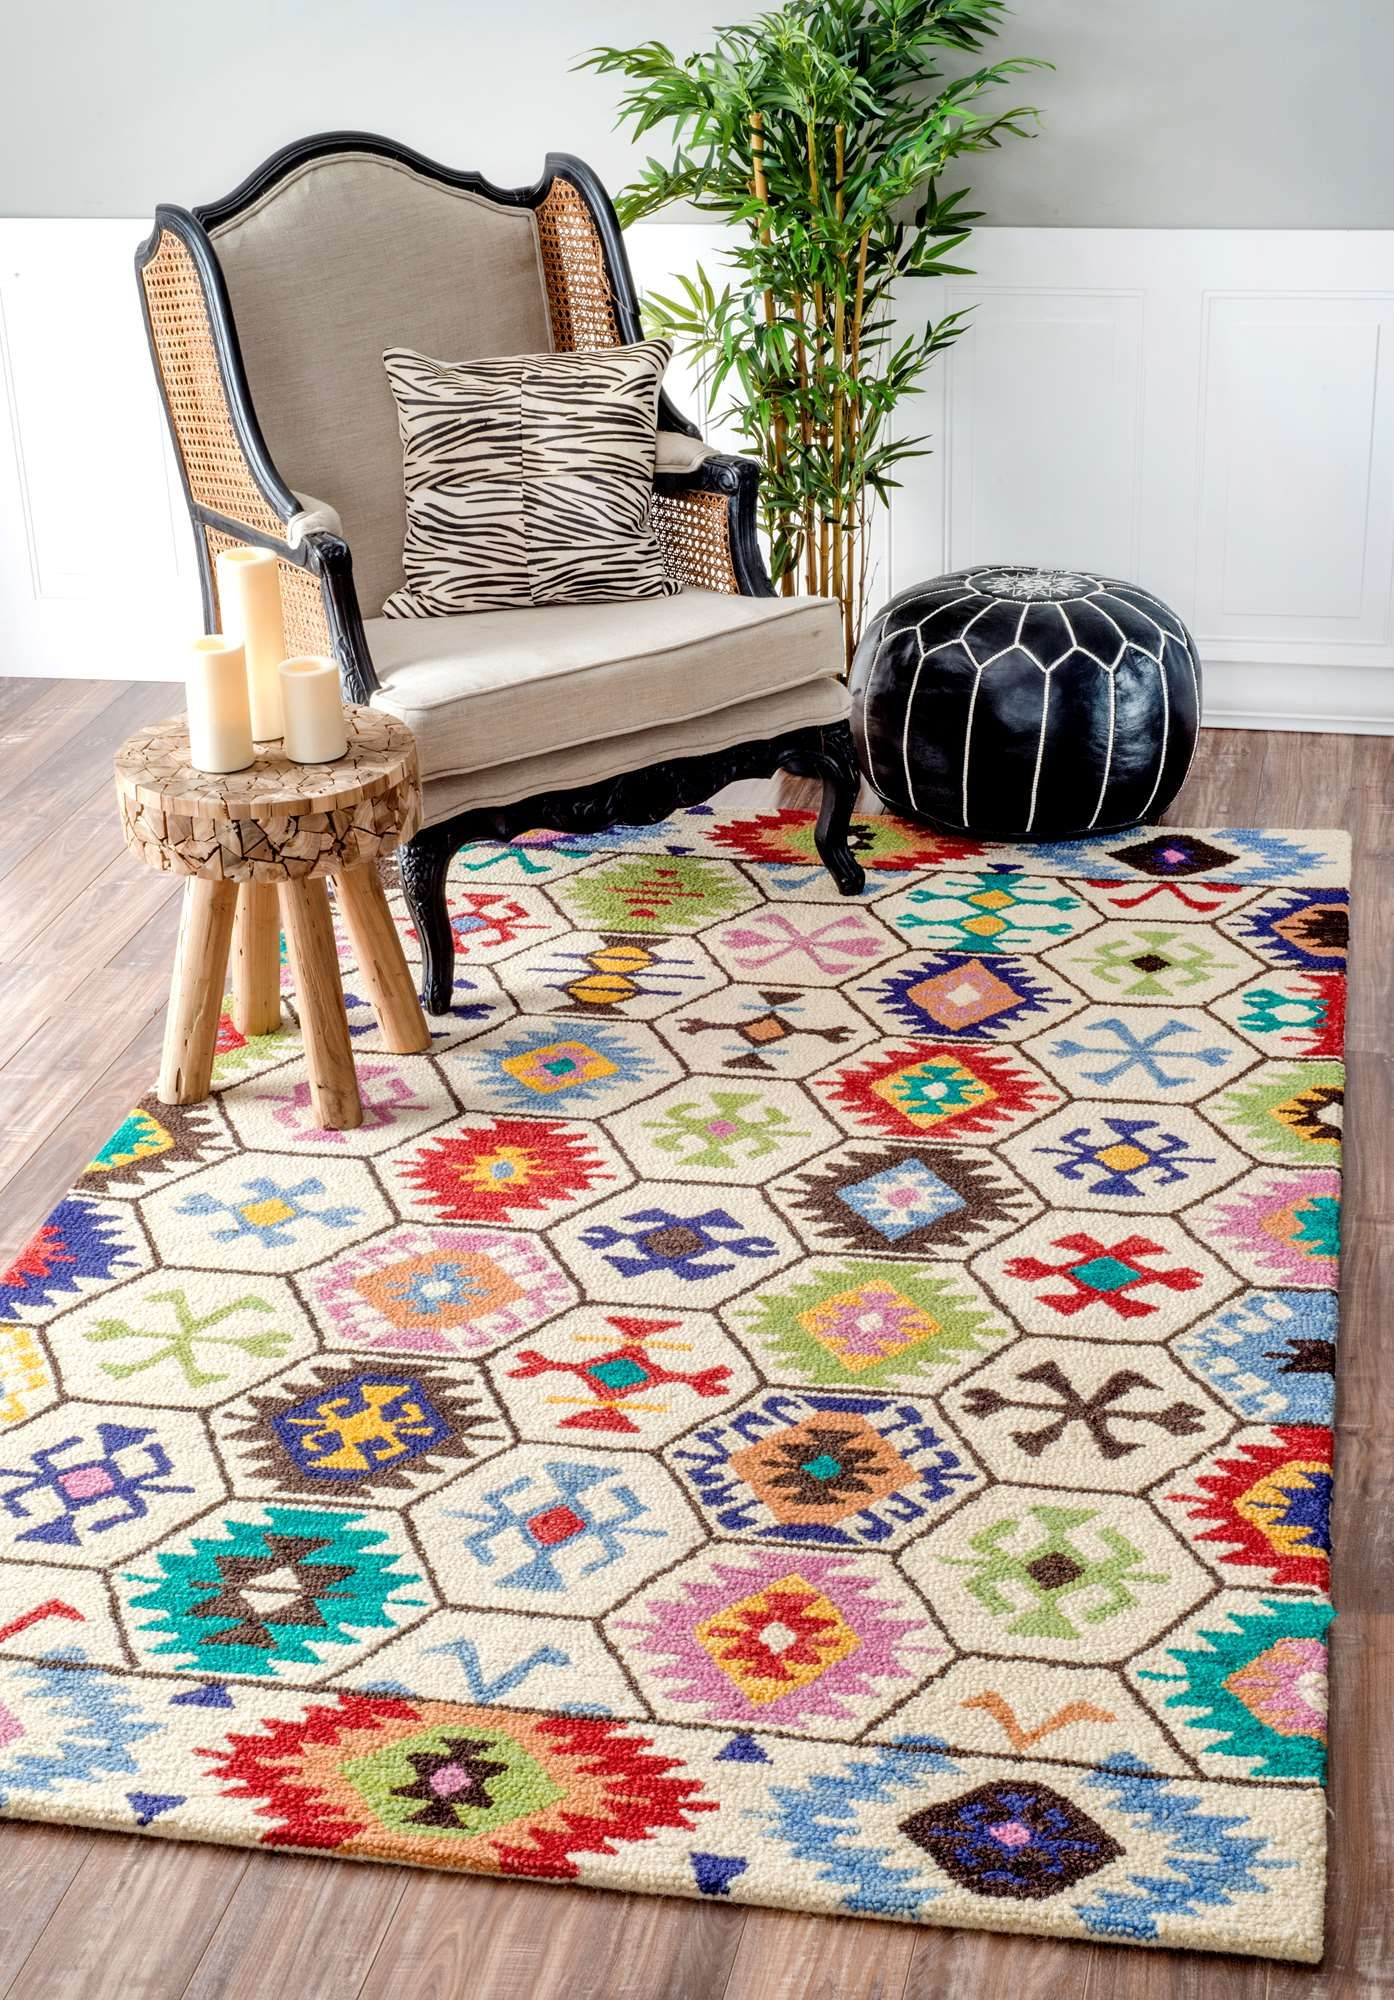 Hand Tufted With Wool, This Bright Tribal Hexagon Rug Brings